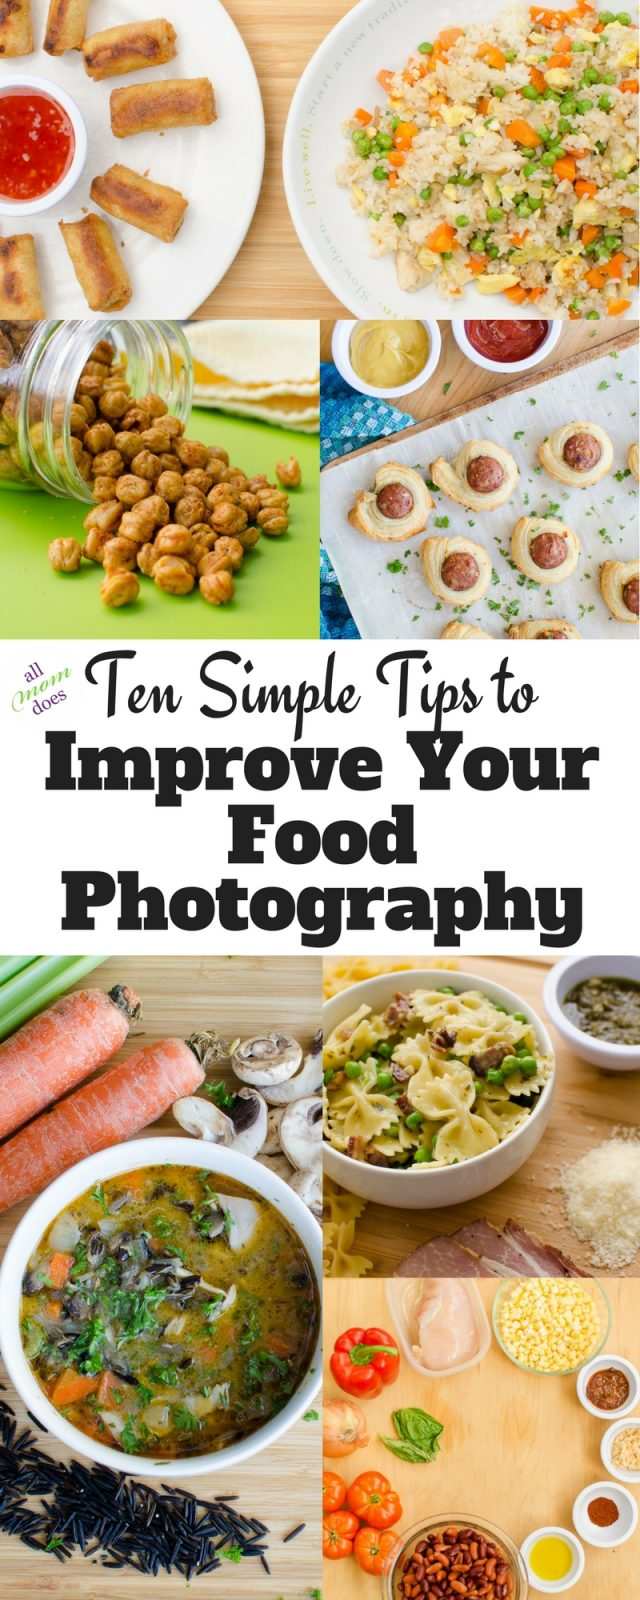 Food Photography Tips - Take better pictures of your food. #photography #foodphotography #foodblogger